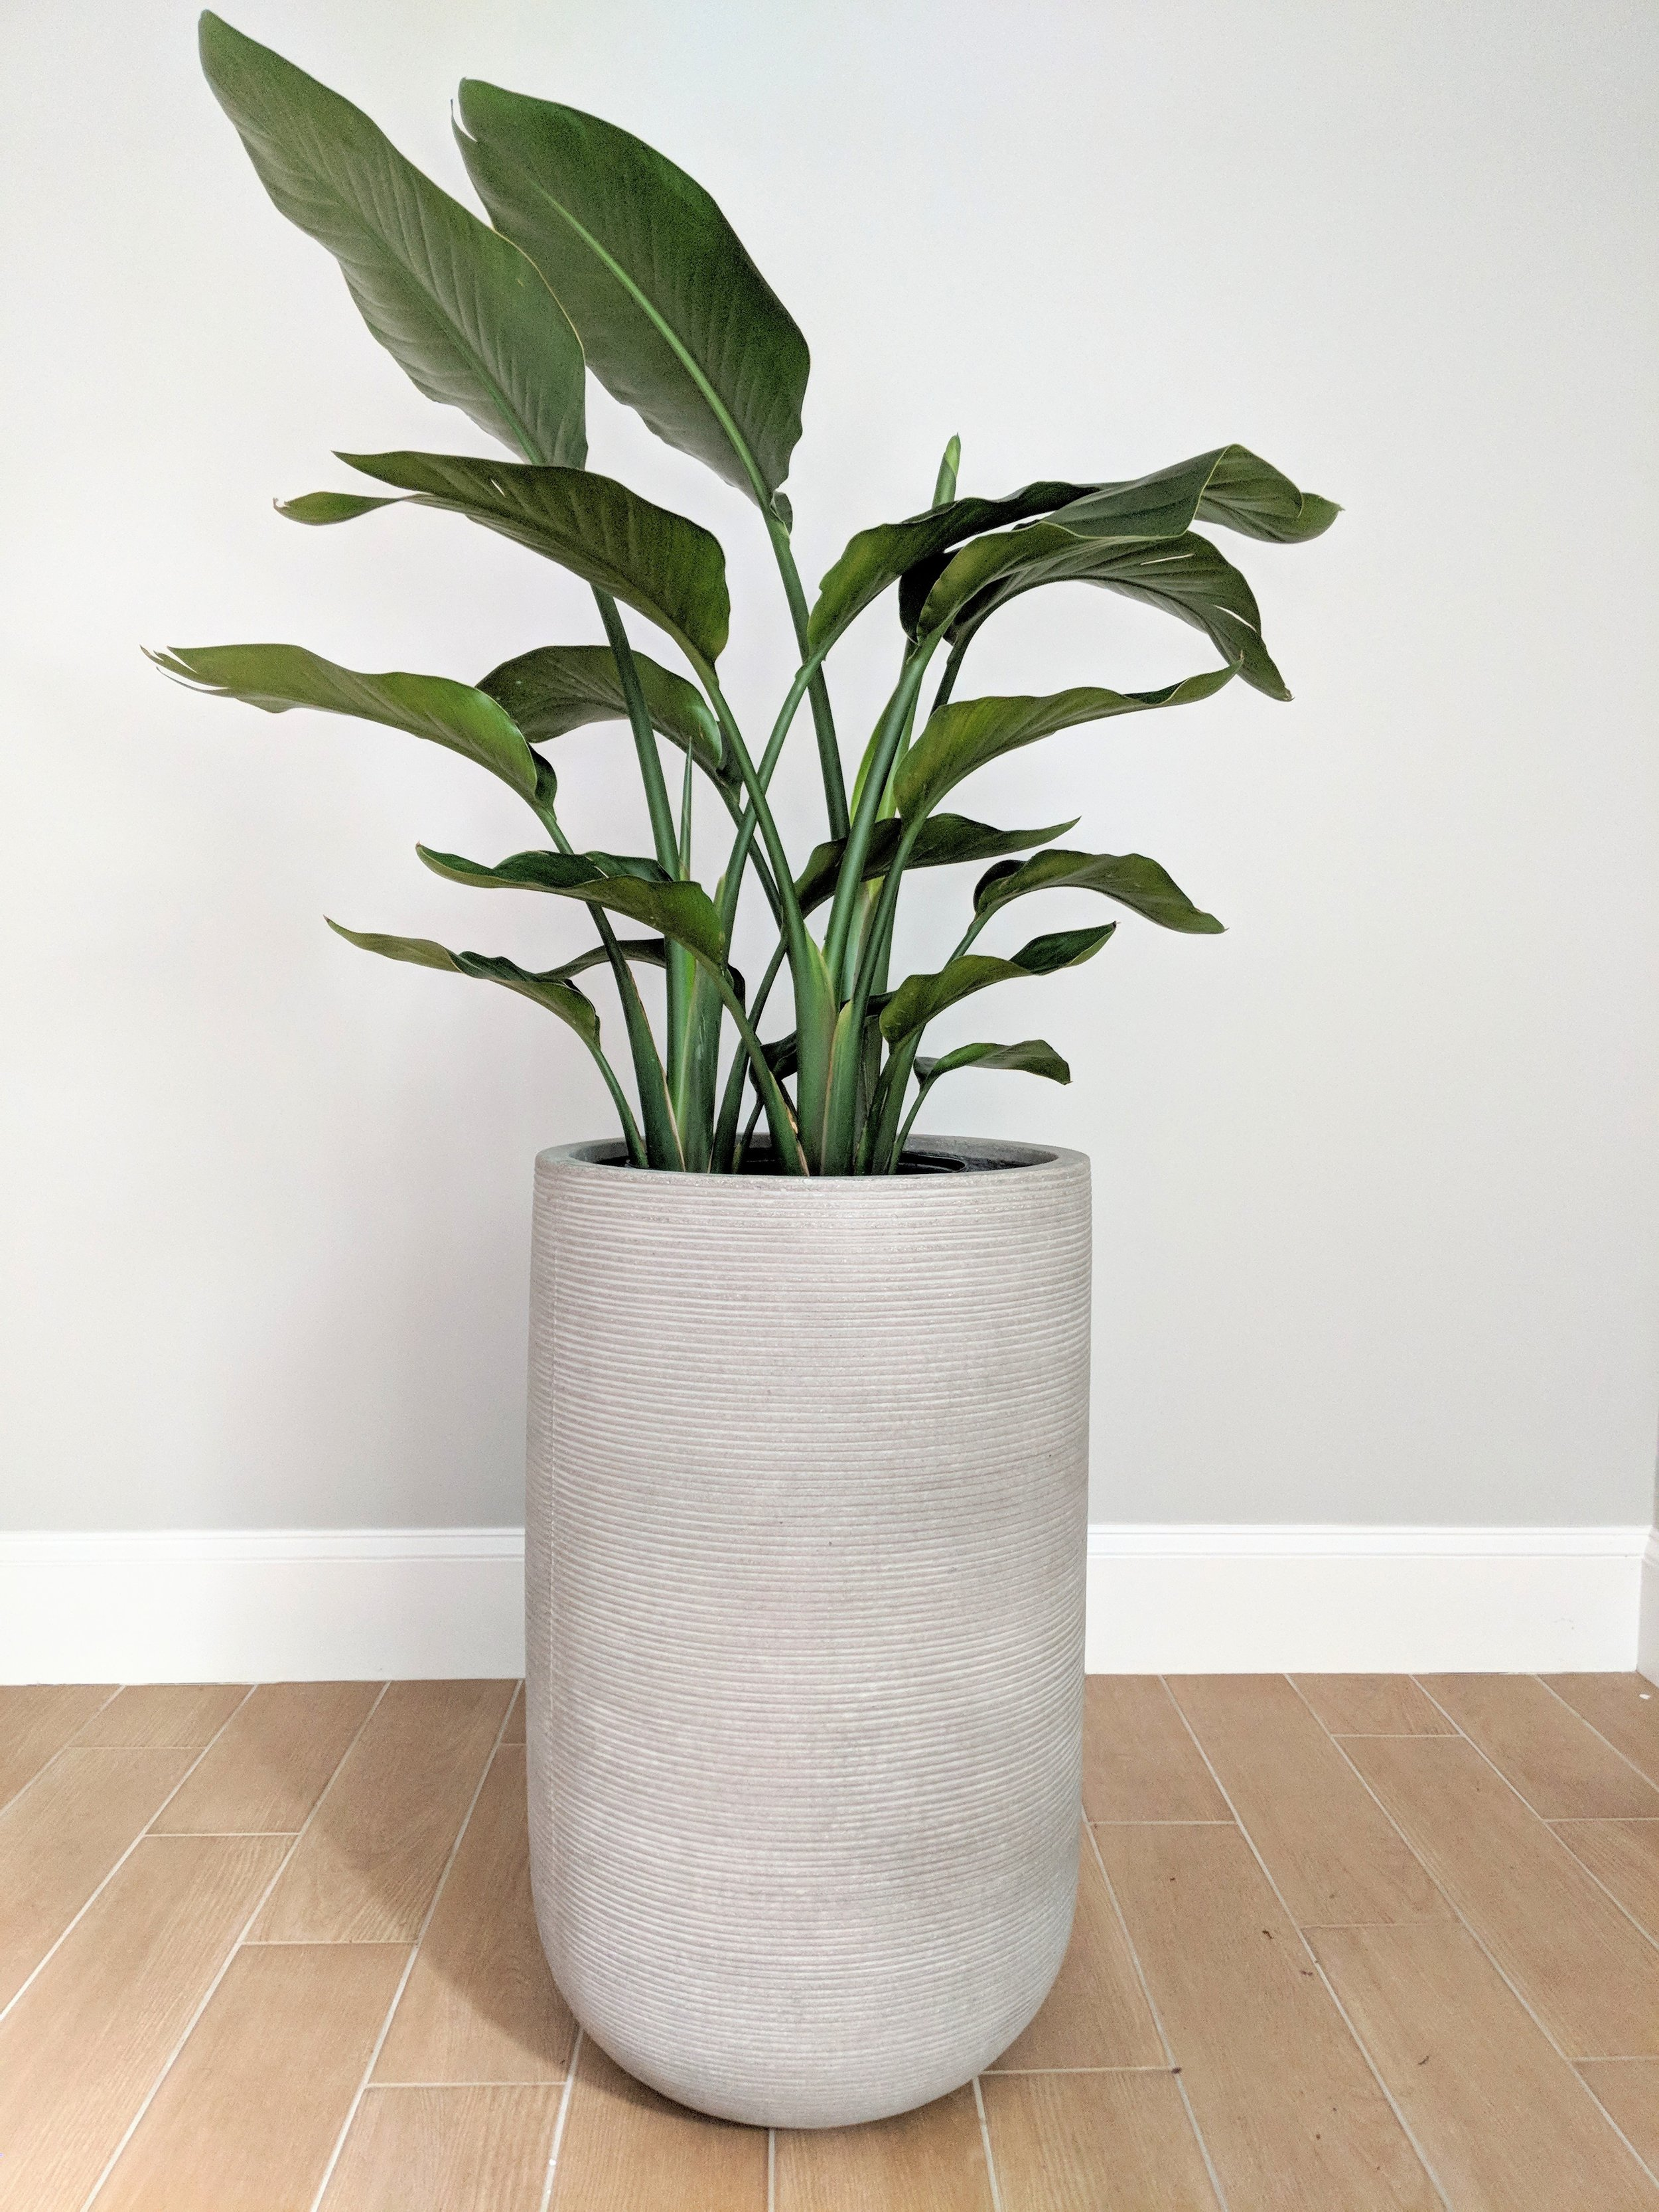 We select plants that will thrive in your space. -